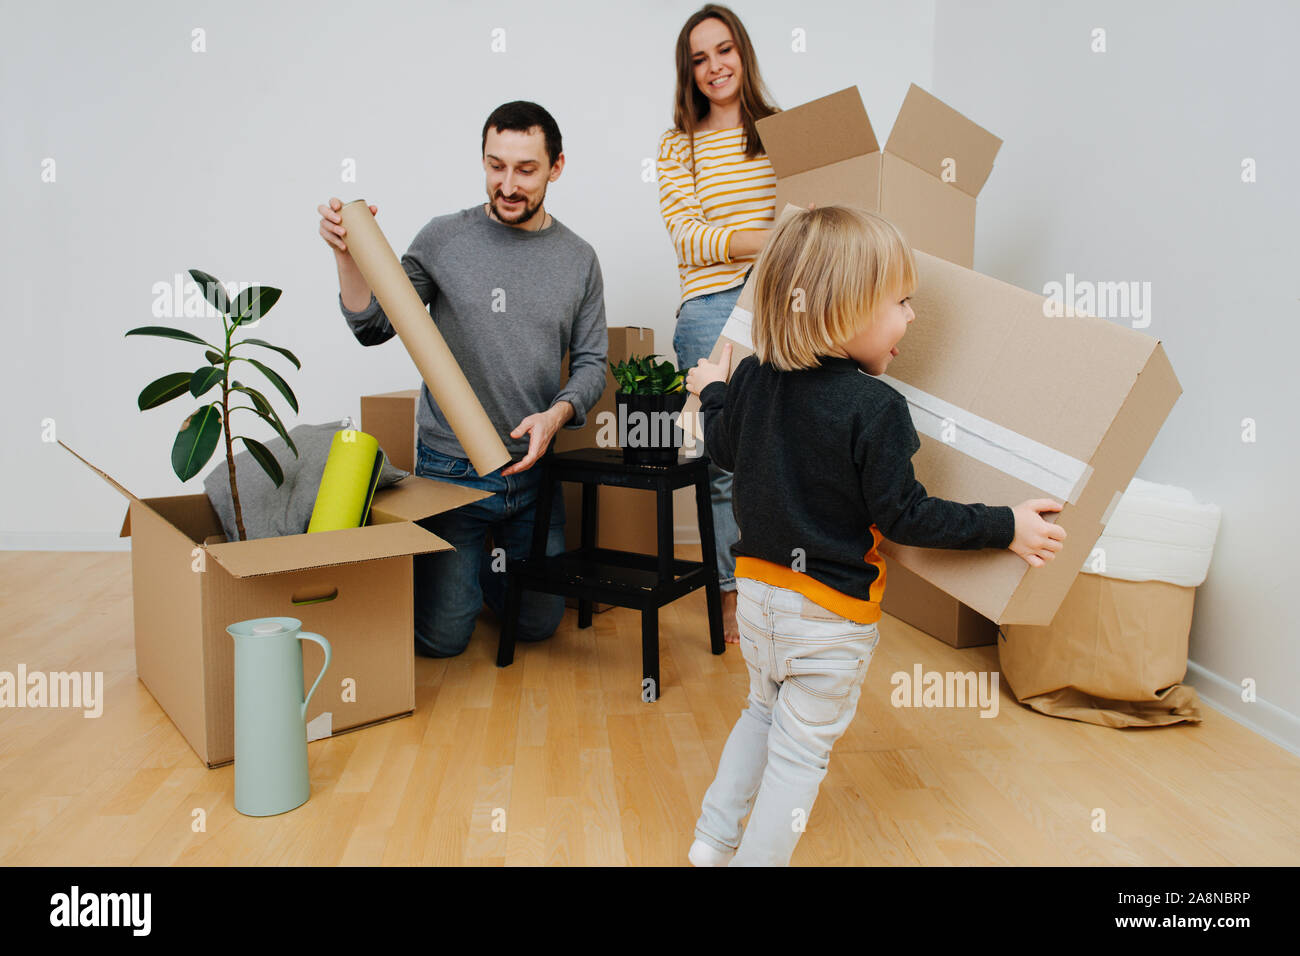 Young family moved into a new home, unpacking cardboard boxes together Stock Photo